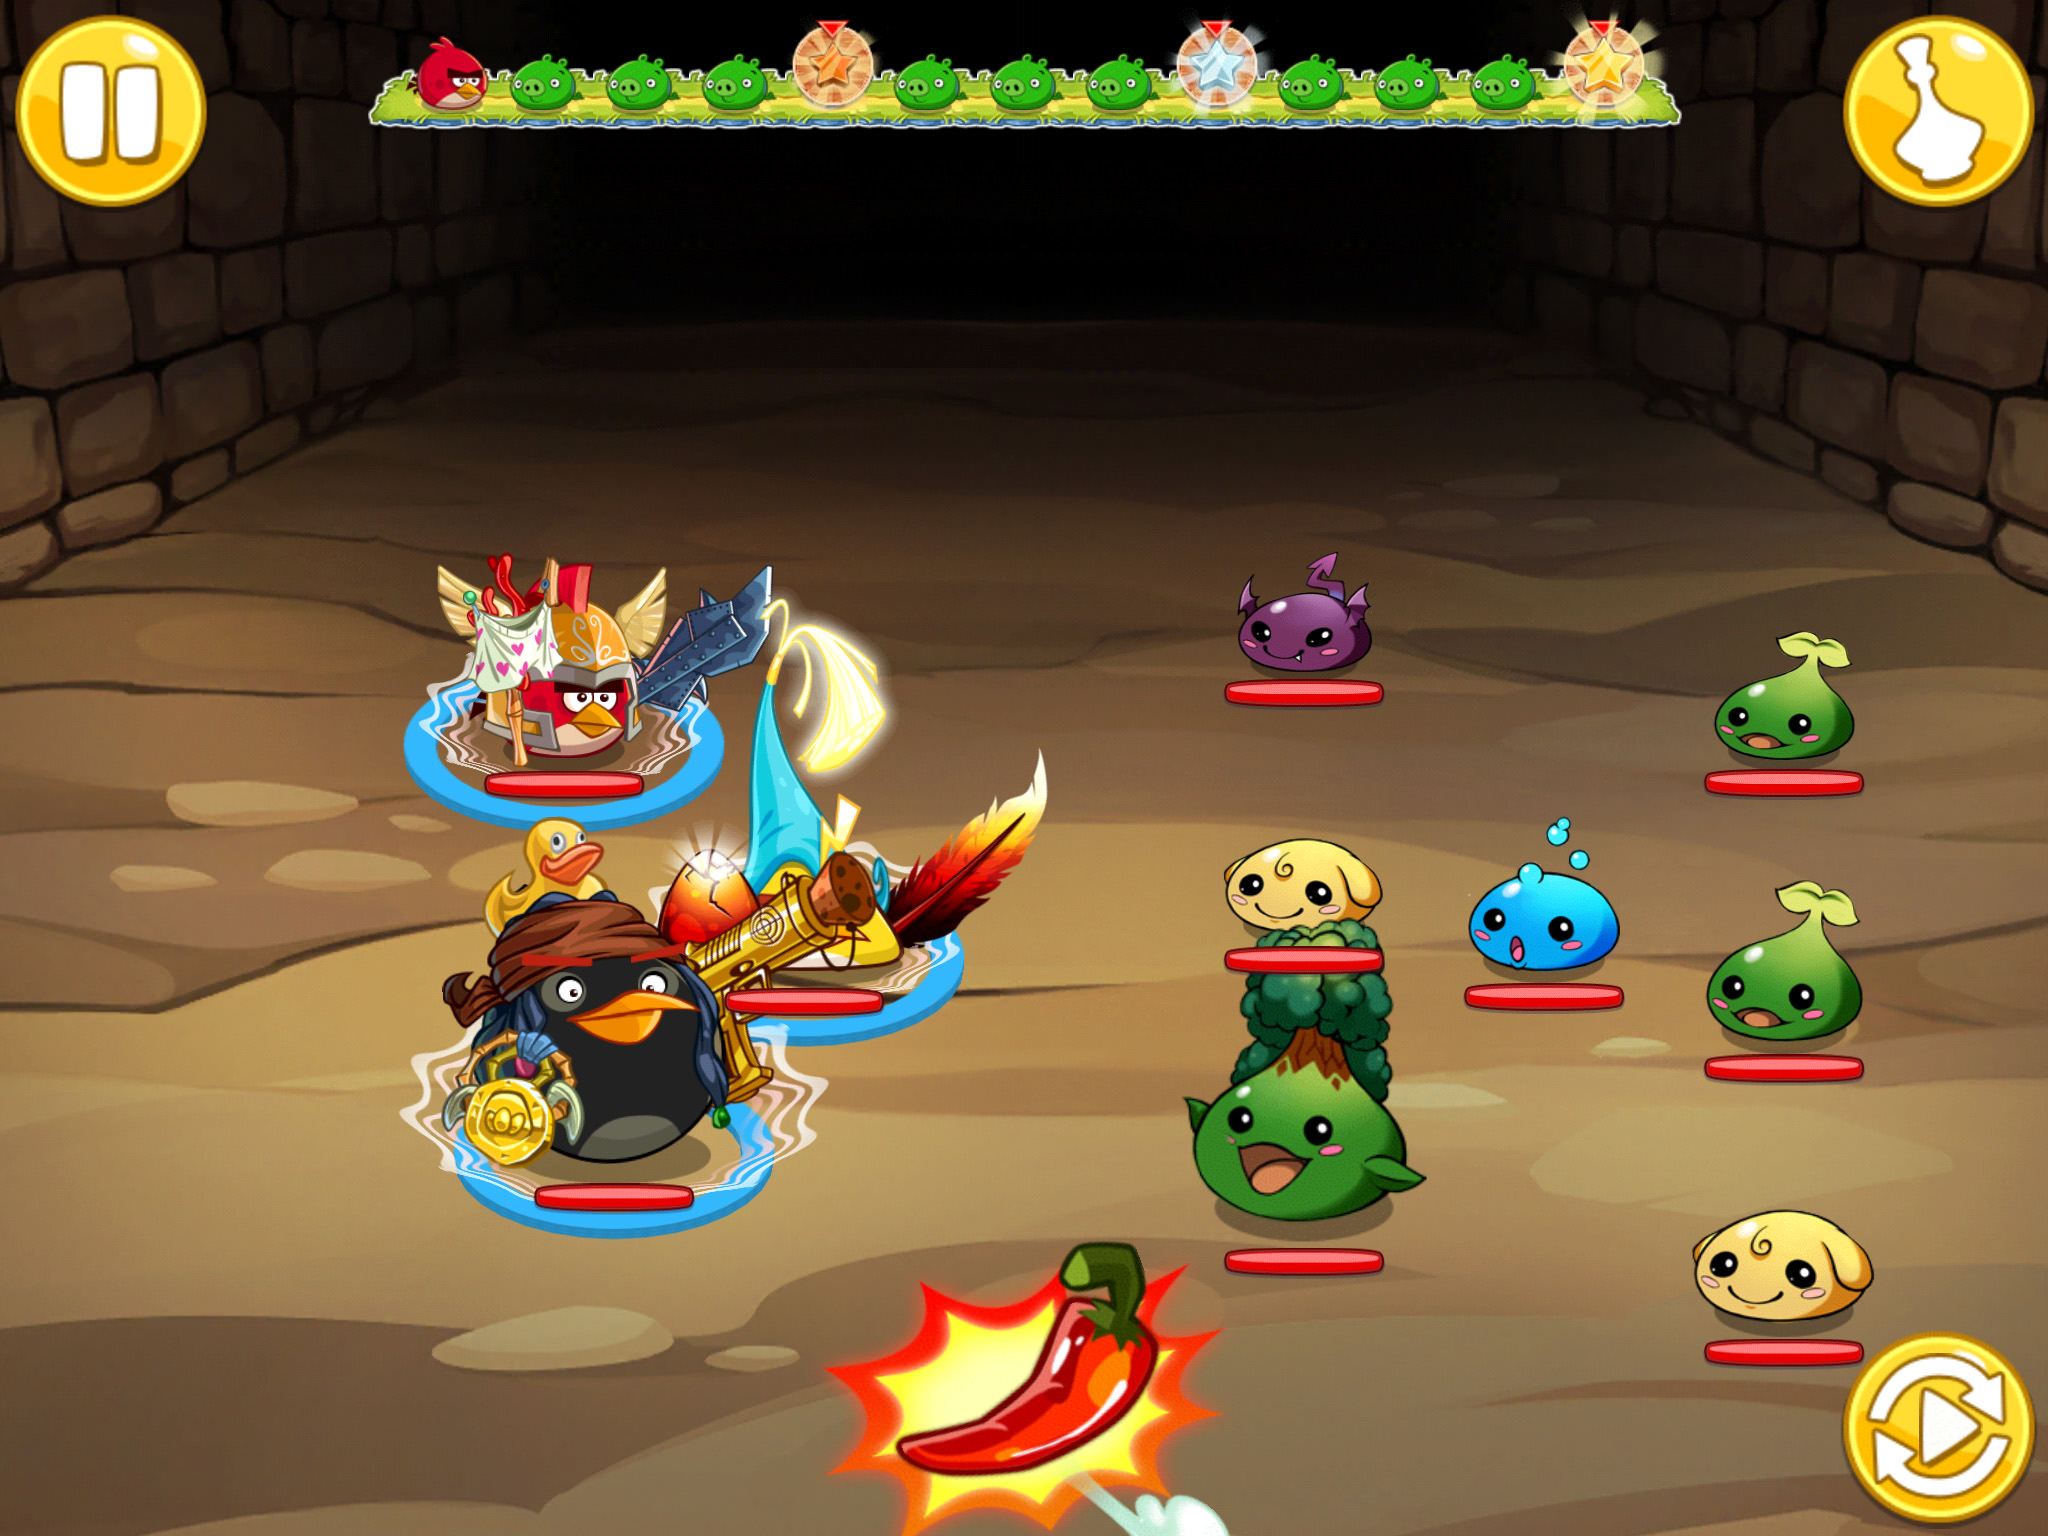 Angry Birds and Puzzle and Dragons partnership - Battle